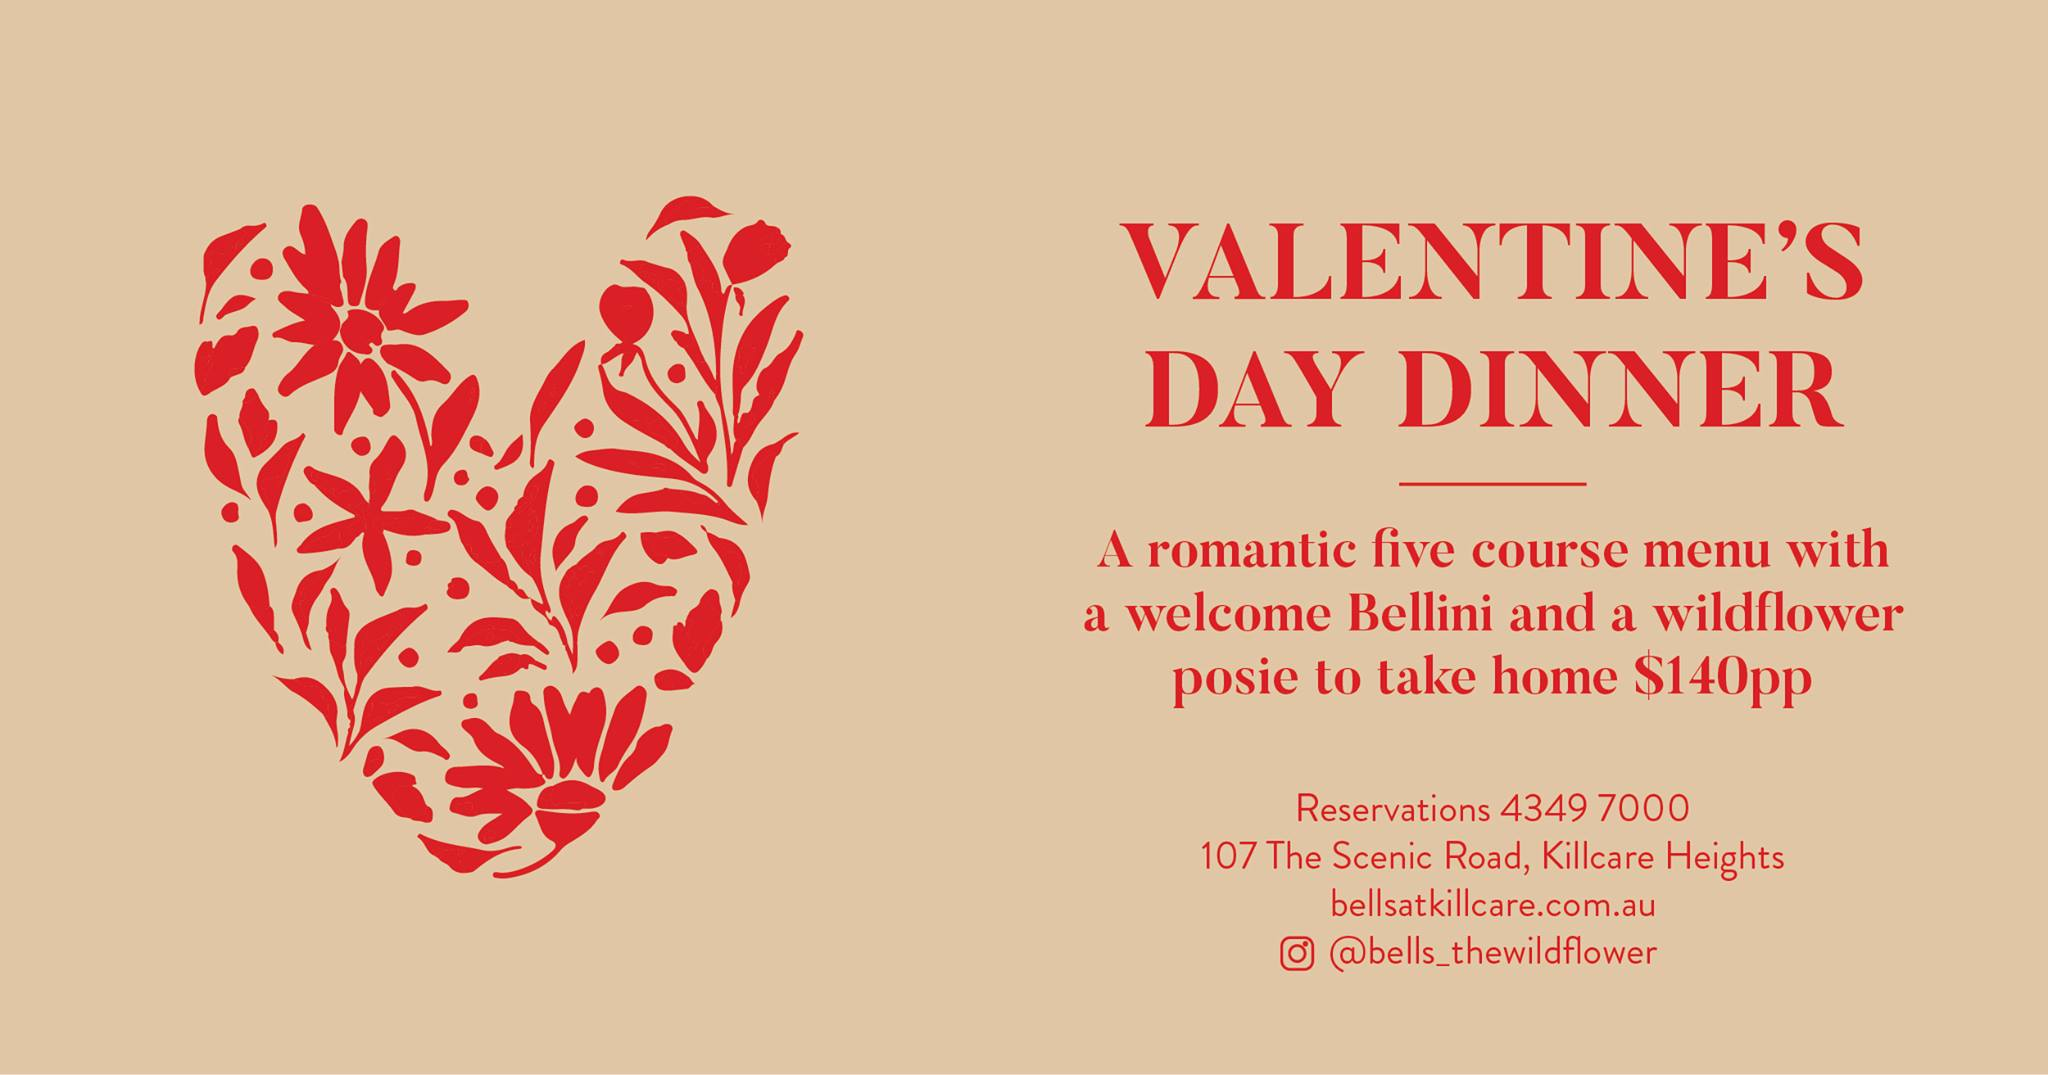 Valentine's Day Dinner at The Wild Flower Bar & Dining